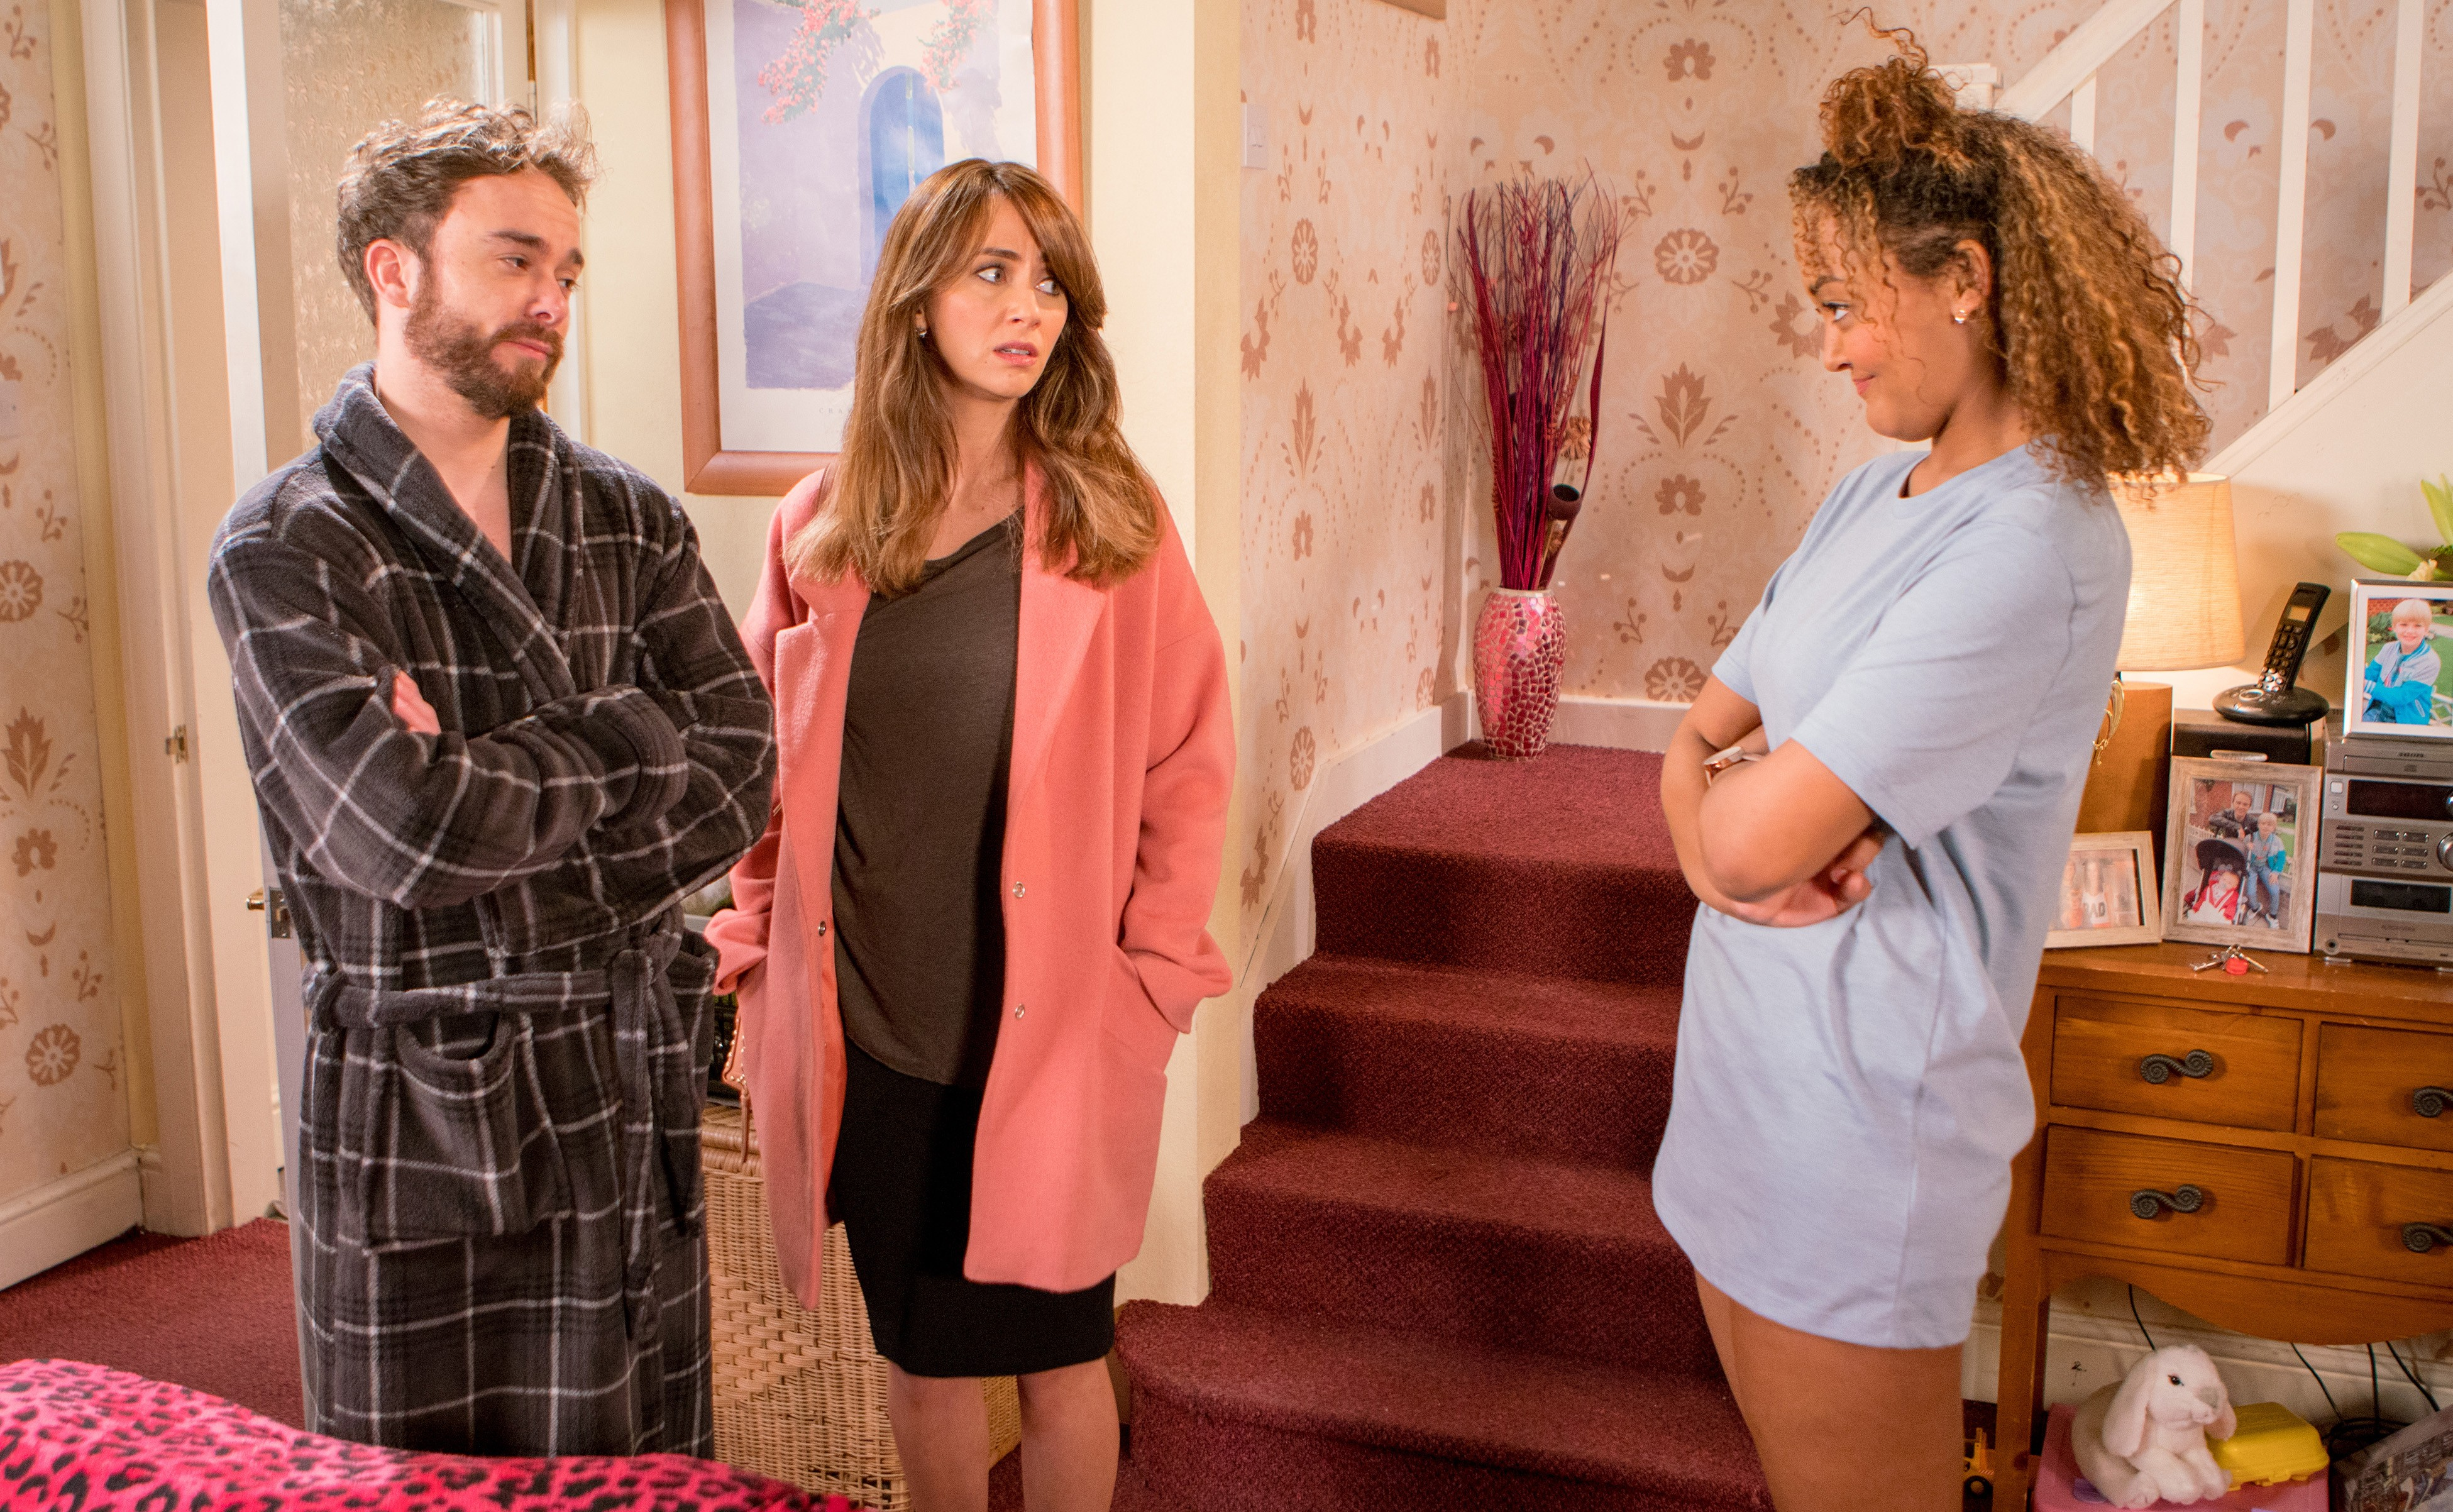 FROM ITV STRICT EMBARGO - No Use Before Tuesday 17th April 2018Coronation Street -  Ep 9438Monday 23rd April 2018 - 2nd EpMaria Connor [SAMIA LONGCHAMBON] arrives at the house to find Emma Brooker ALEXANDRA MARDELL] in a state of undress, shocked Maria makes a swift exit. David Platt [JACK P SHEPHERD] gives Emma a set of keys and asks her to move in!Picture contact - david.crook@itv.comPhotographer - Andrew BoyceThis photograph is (C) ITV Plc and can only be reproduced for editorial purposes directly in connection with the programme or event mentioned above, or ITV plc. Once made available by ITV plc Picture Desk, this photograph can be reproduced once only up until the transmission [TX] date and no reproduction fee will be charged. Any subsequent usage may incur a fee. This photograph must not be manipulated [excluding basic cropping] in a manner which alters the visual appearance of the person photographed deemed detrimental or inappropriate by ITV plc Picture Desk. This photograph must not be syndicated to any other company, publication or website, or permanently archived, without the express written permission of ITV Plc Picture Desk. Full Terms and conditions are available on the website www.itvpictures.com